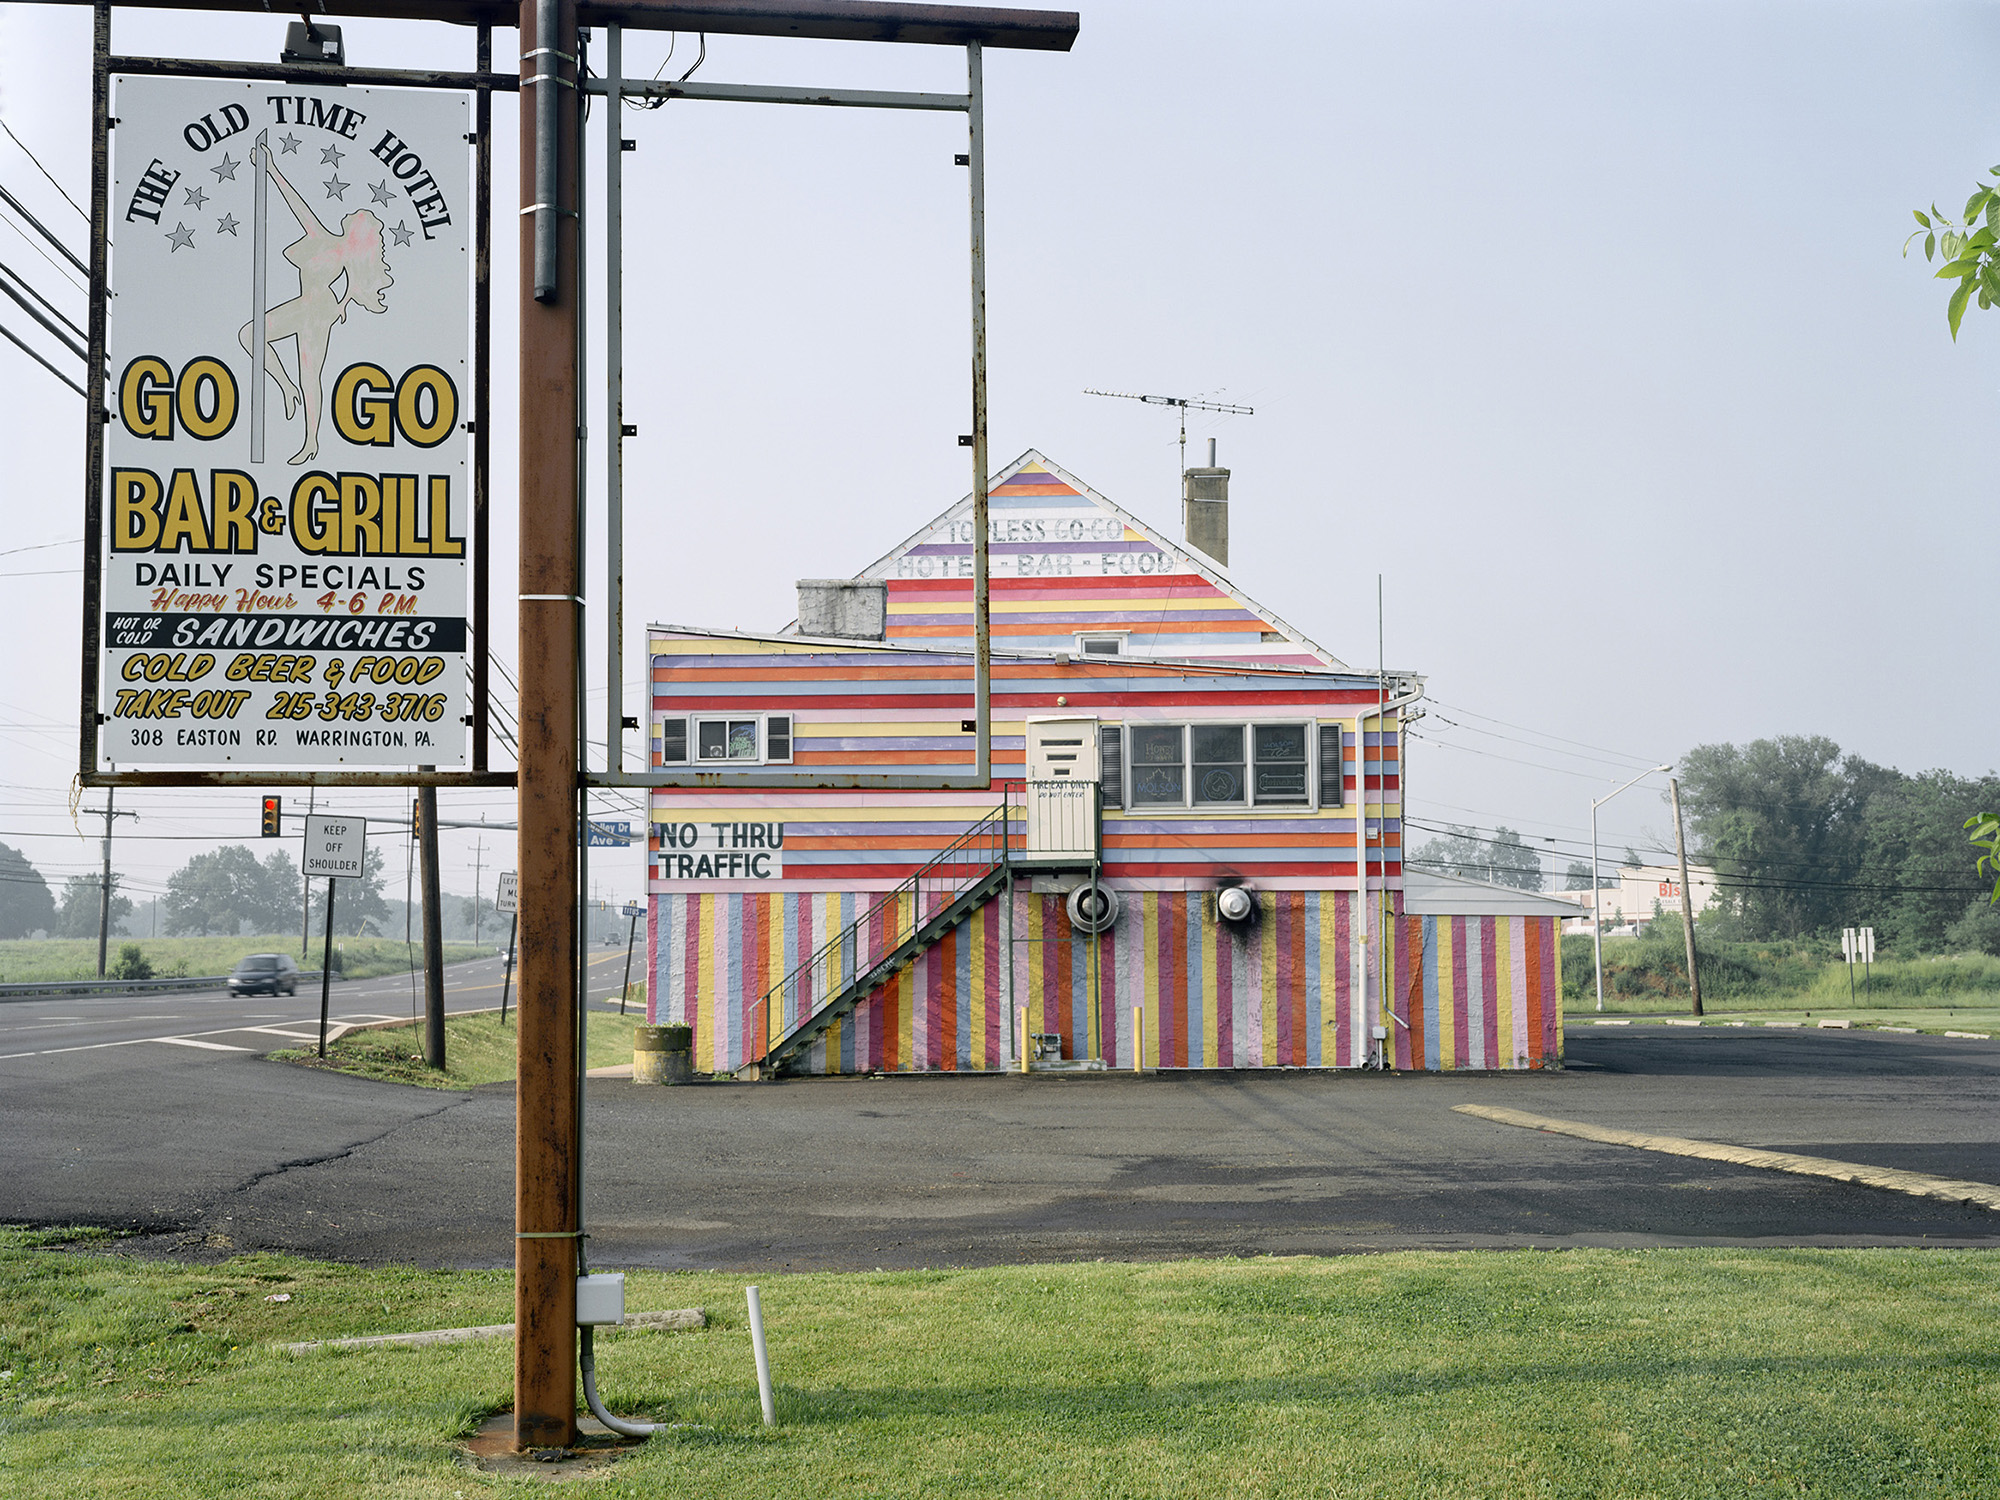 The Old Time Hotel Go-Go Bar and Grill (now demolished), Warrington, PA.